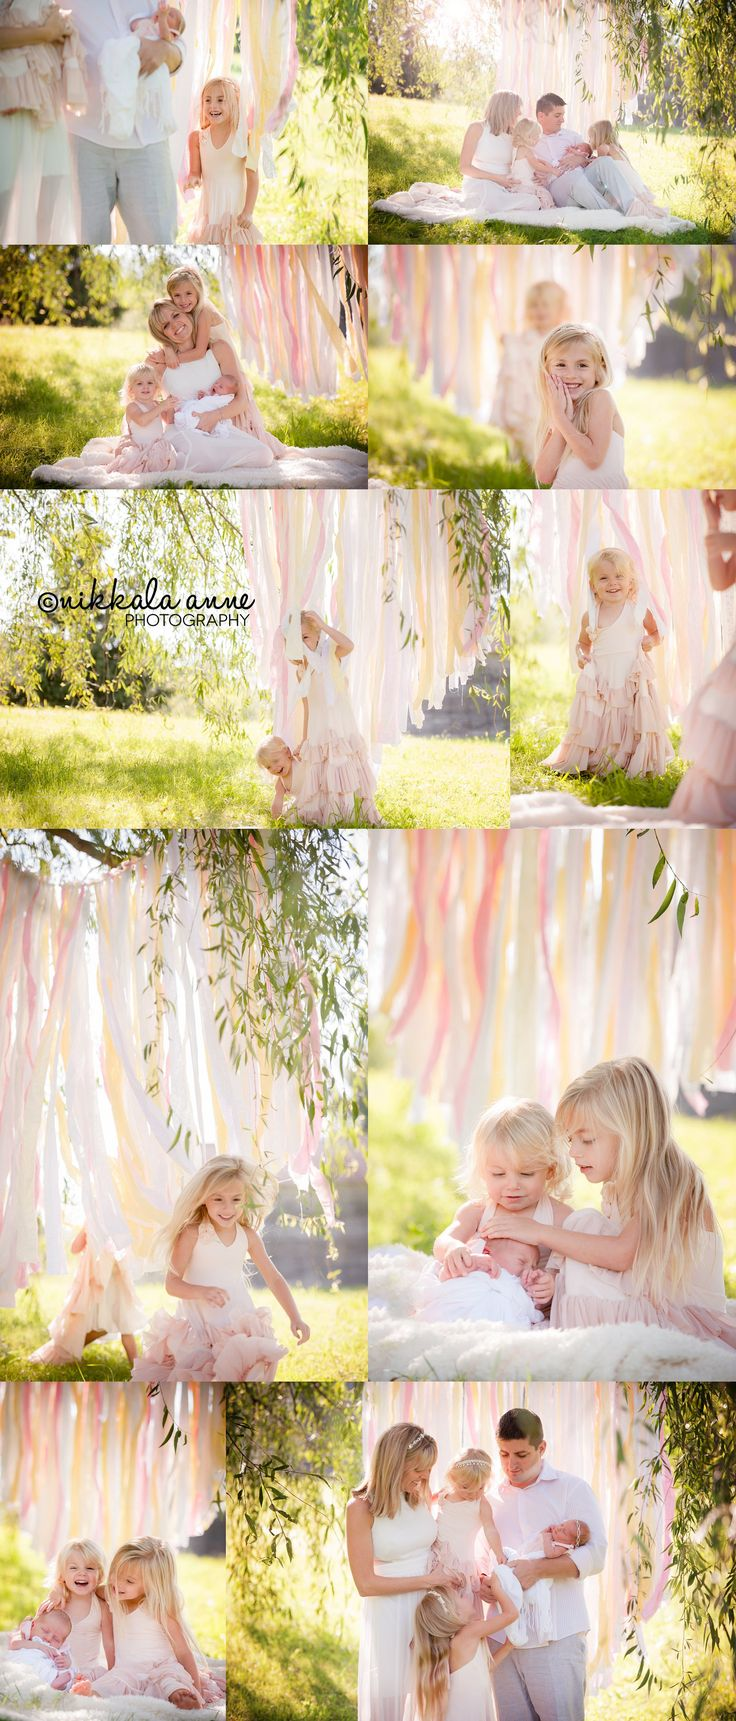 3 beautiful princesses   Nikkala Anne Photography click to see whole blog post newborn photography family photography photo session inspiration siblings willow tree